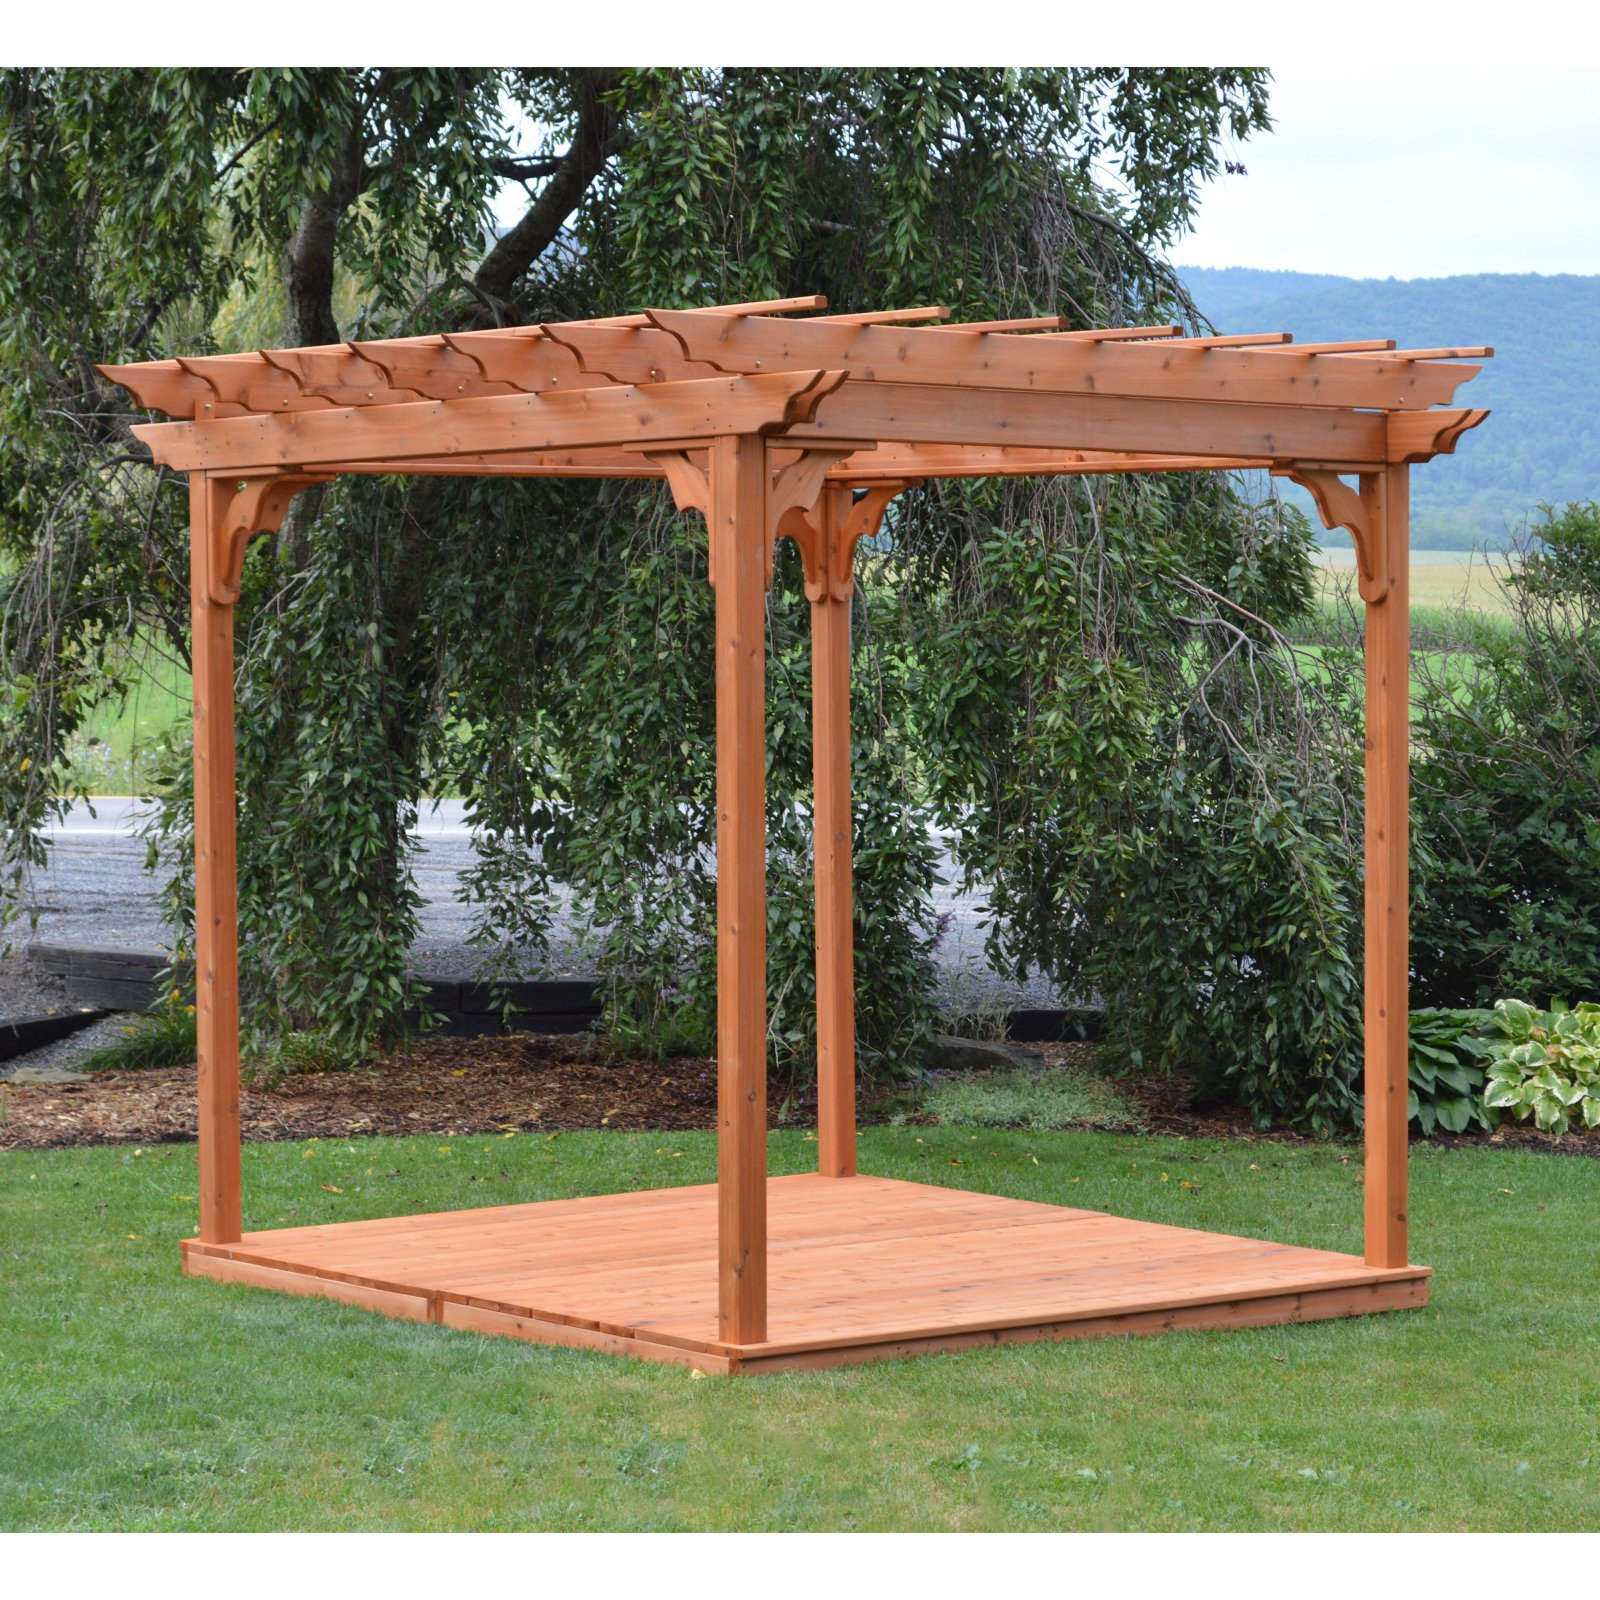 A & L Furniture Western Red Cedar Pergola With Deck and Swing Hangers by A and L Furniture Co